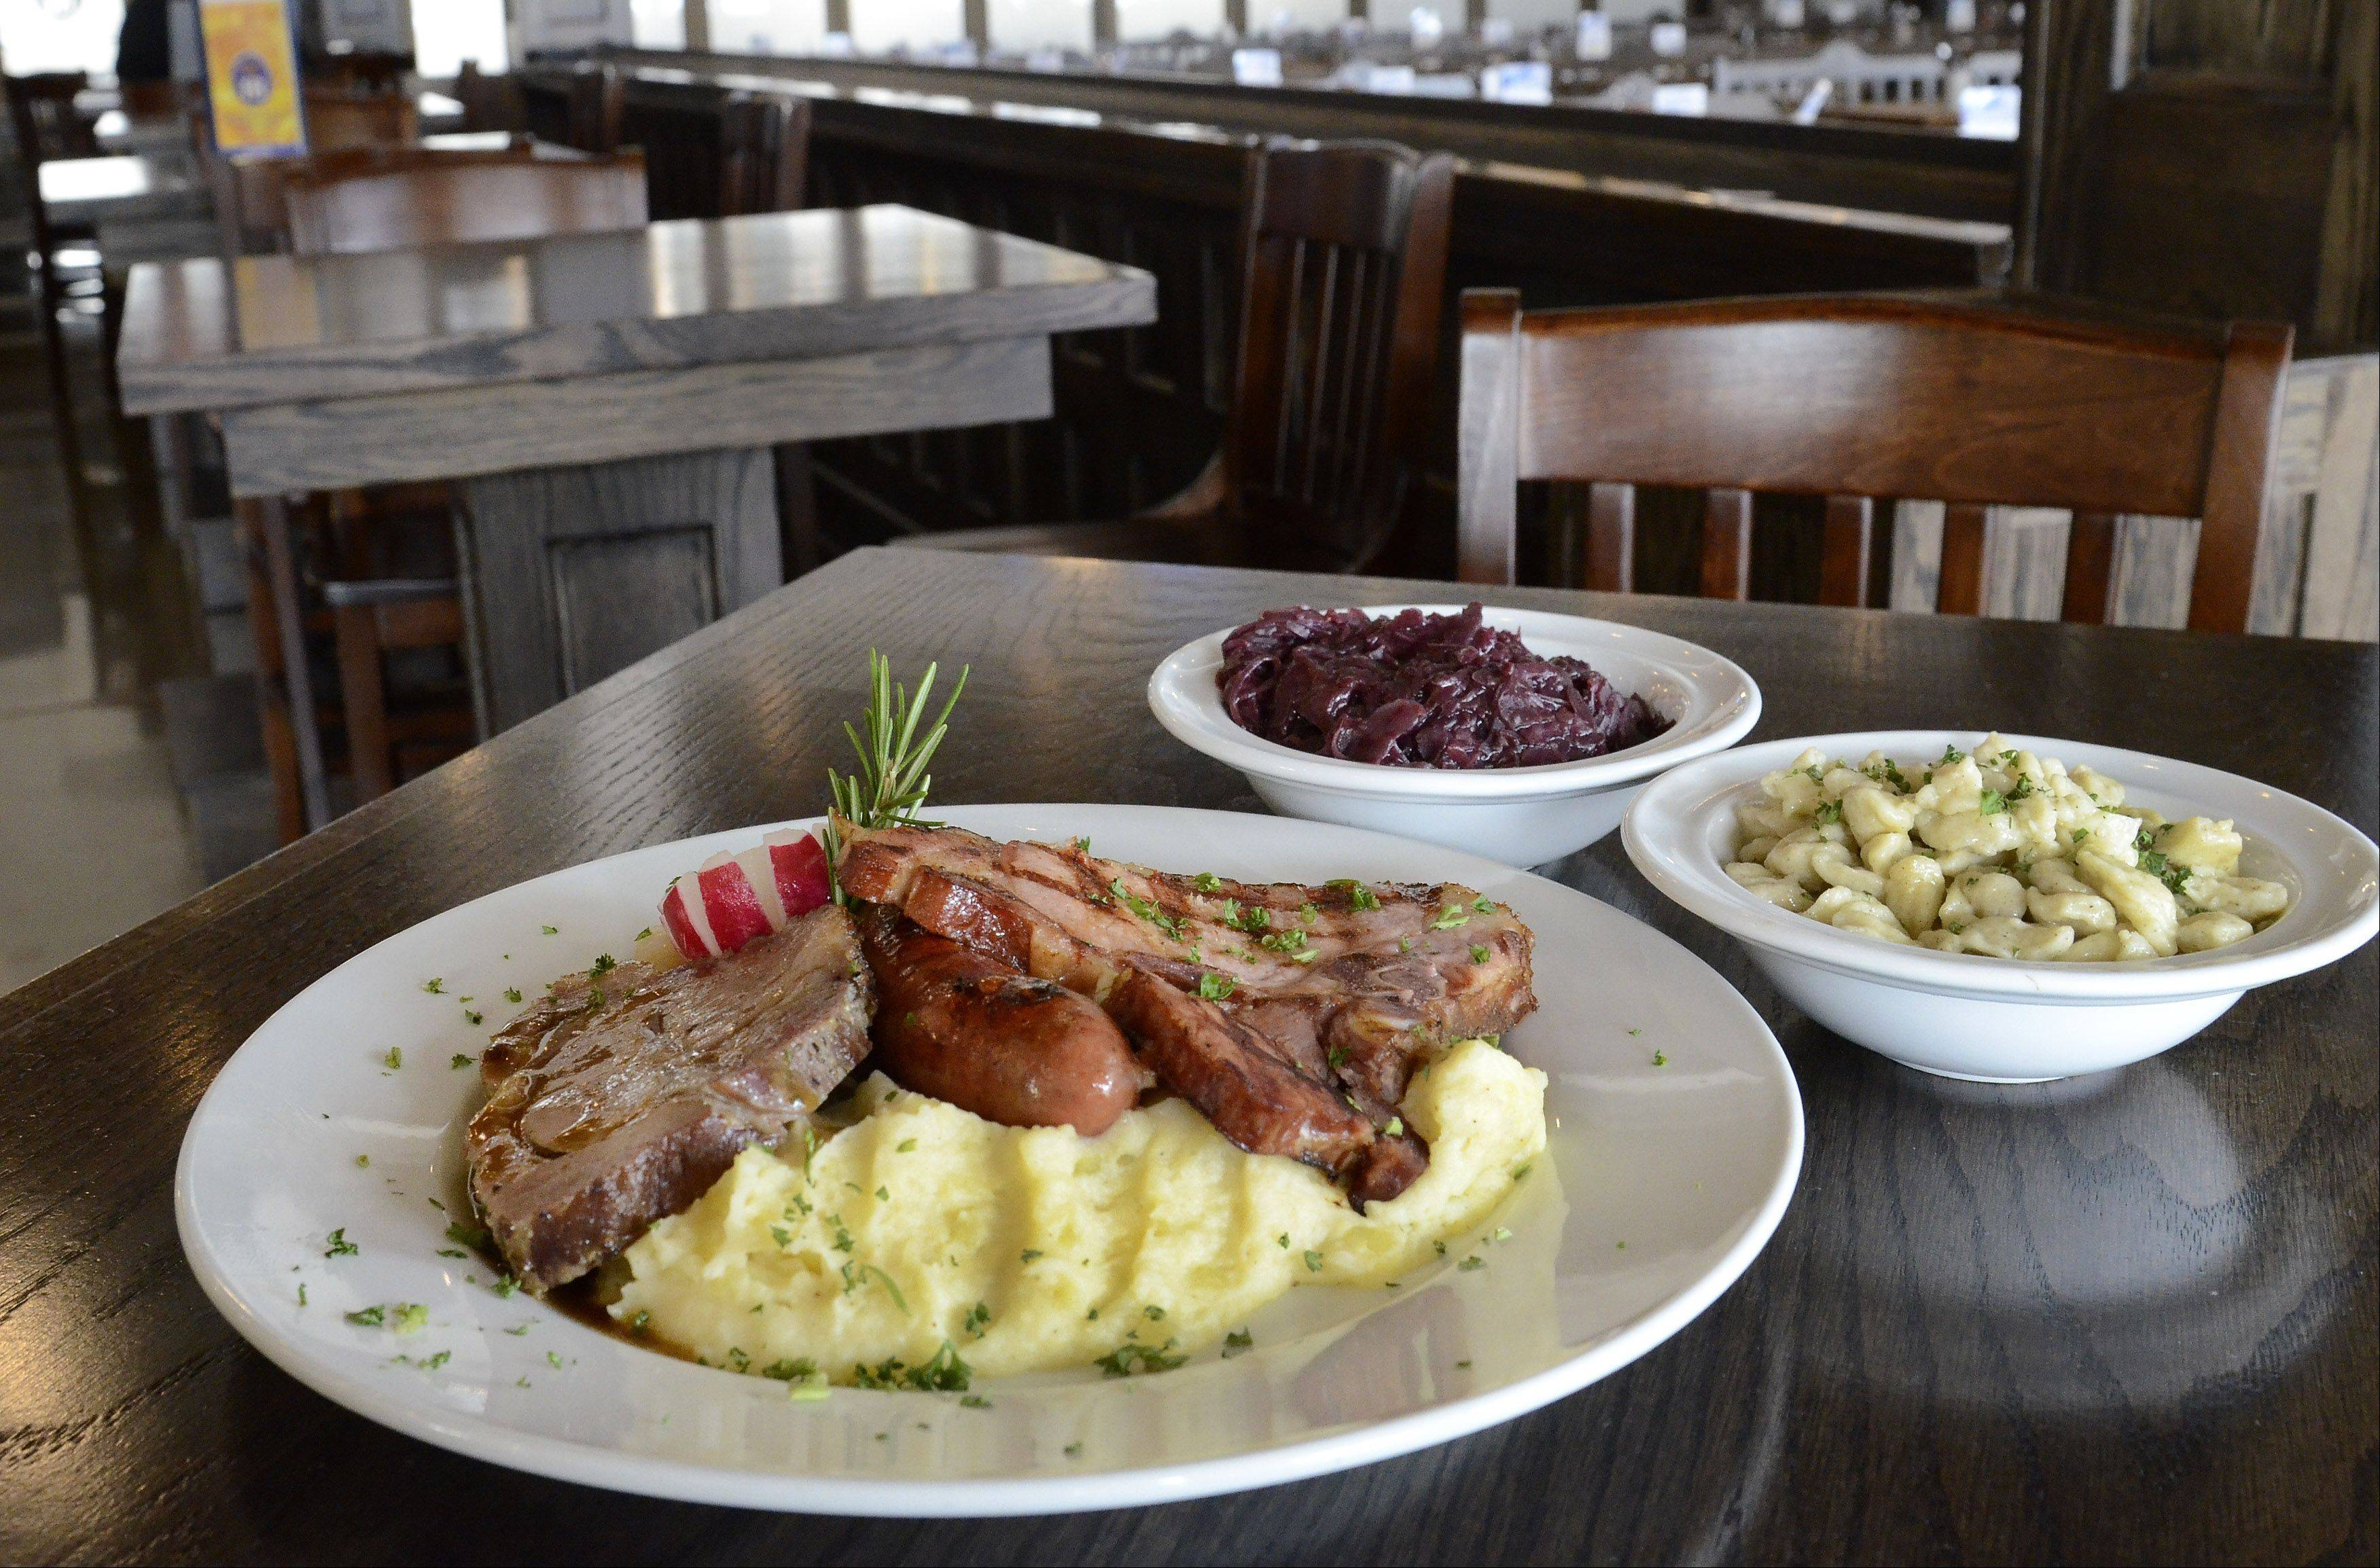 The Hofrauhaus Platter offers diners a taste of specialties like smoked pork loin, pork roast and smoked sausage. Try it with a side of spaetzle and red cabbage.